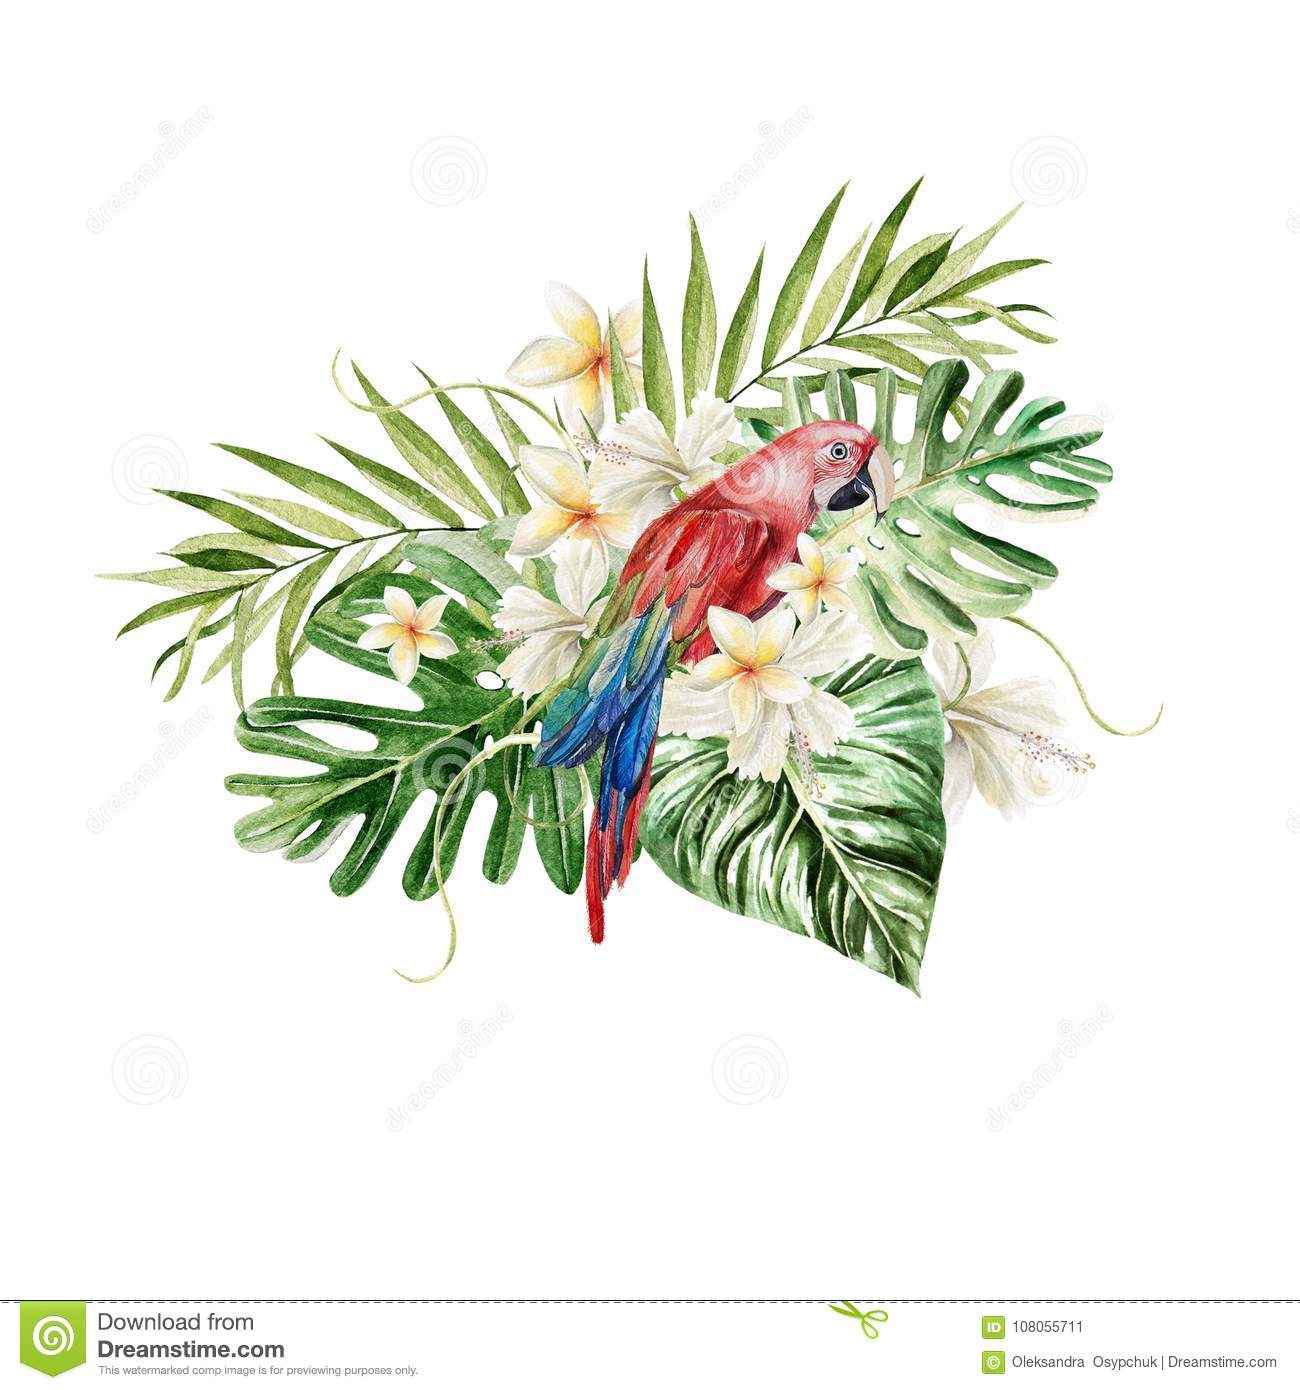 6a51e0ddc A beautiful watercolor bouquet with a parrot and leaves of a palm tree,  flowers.